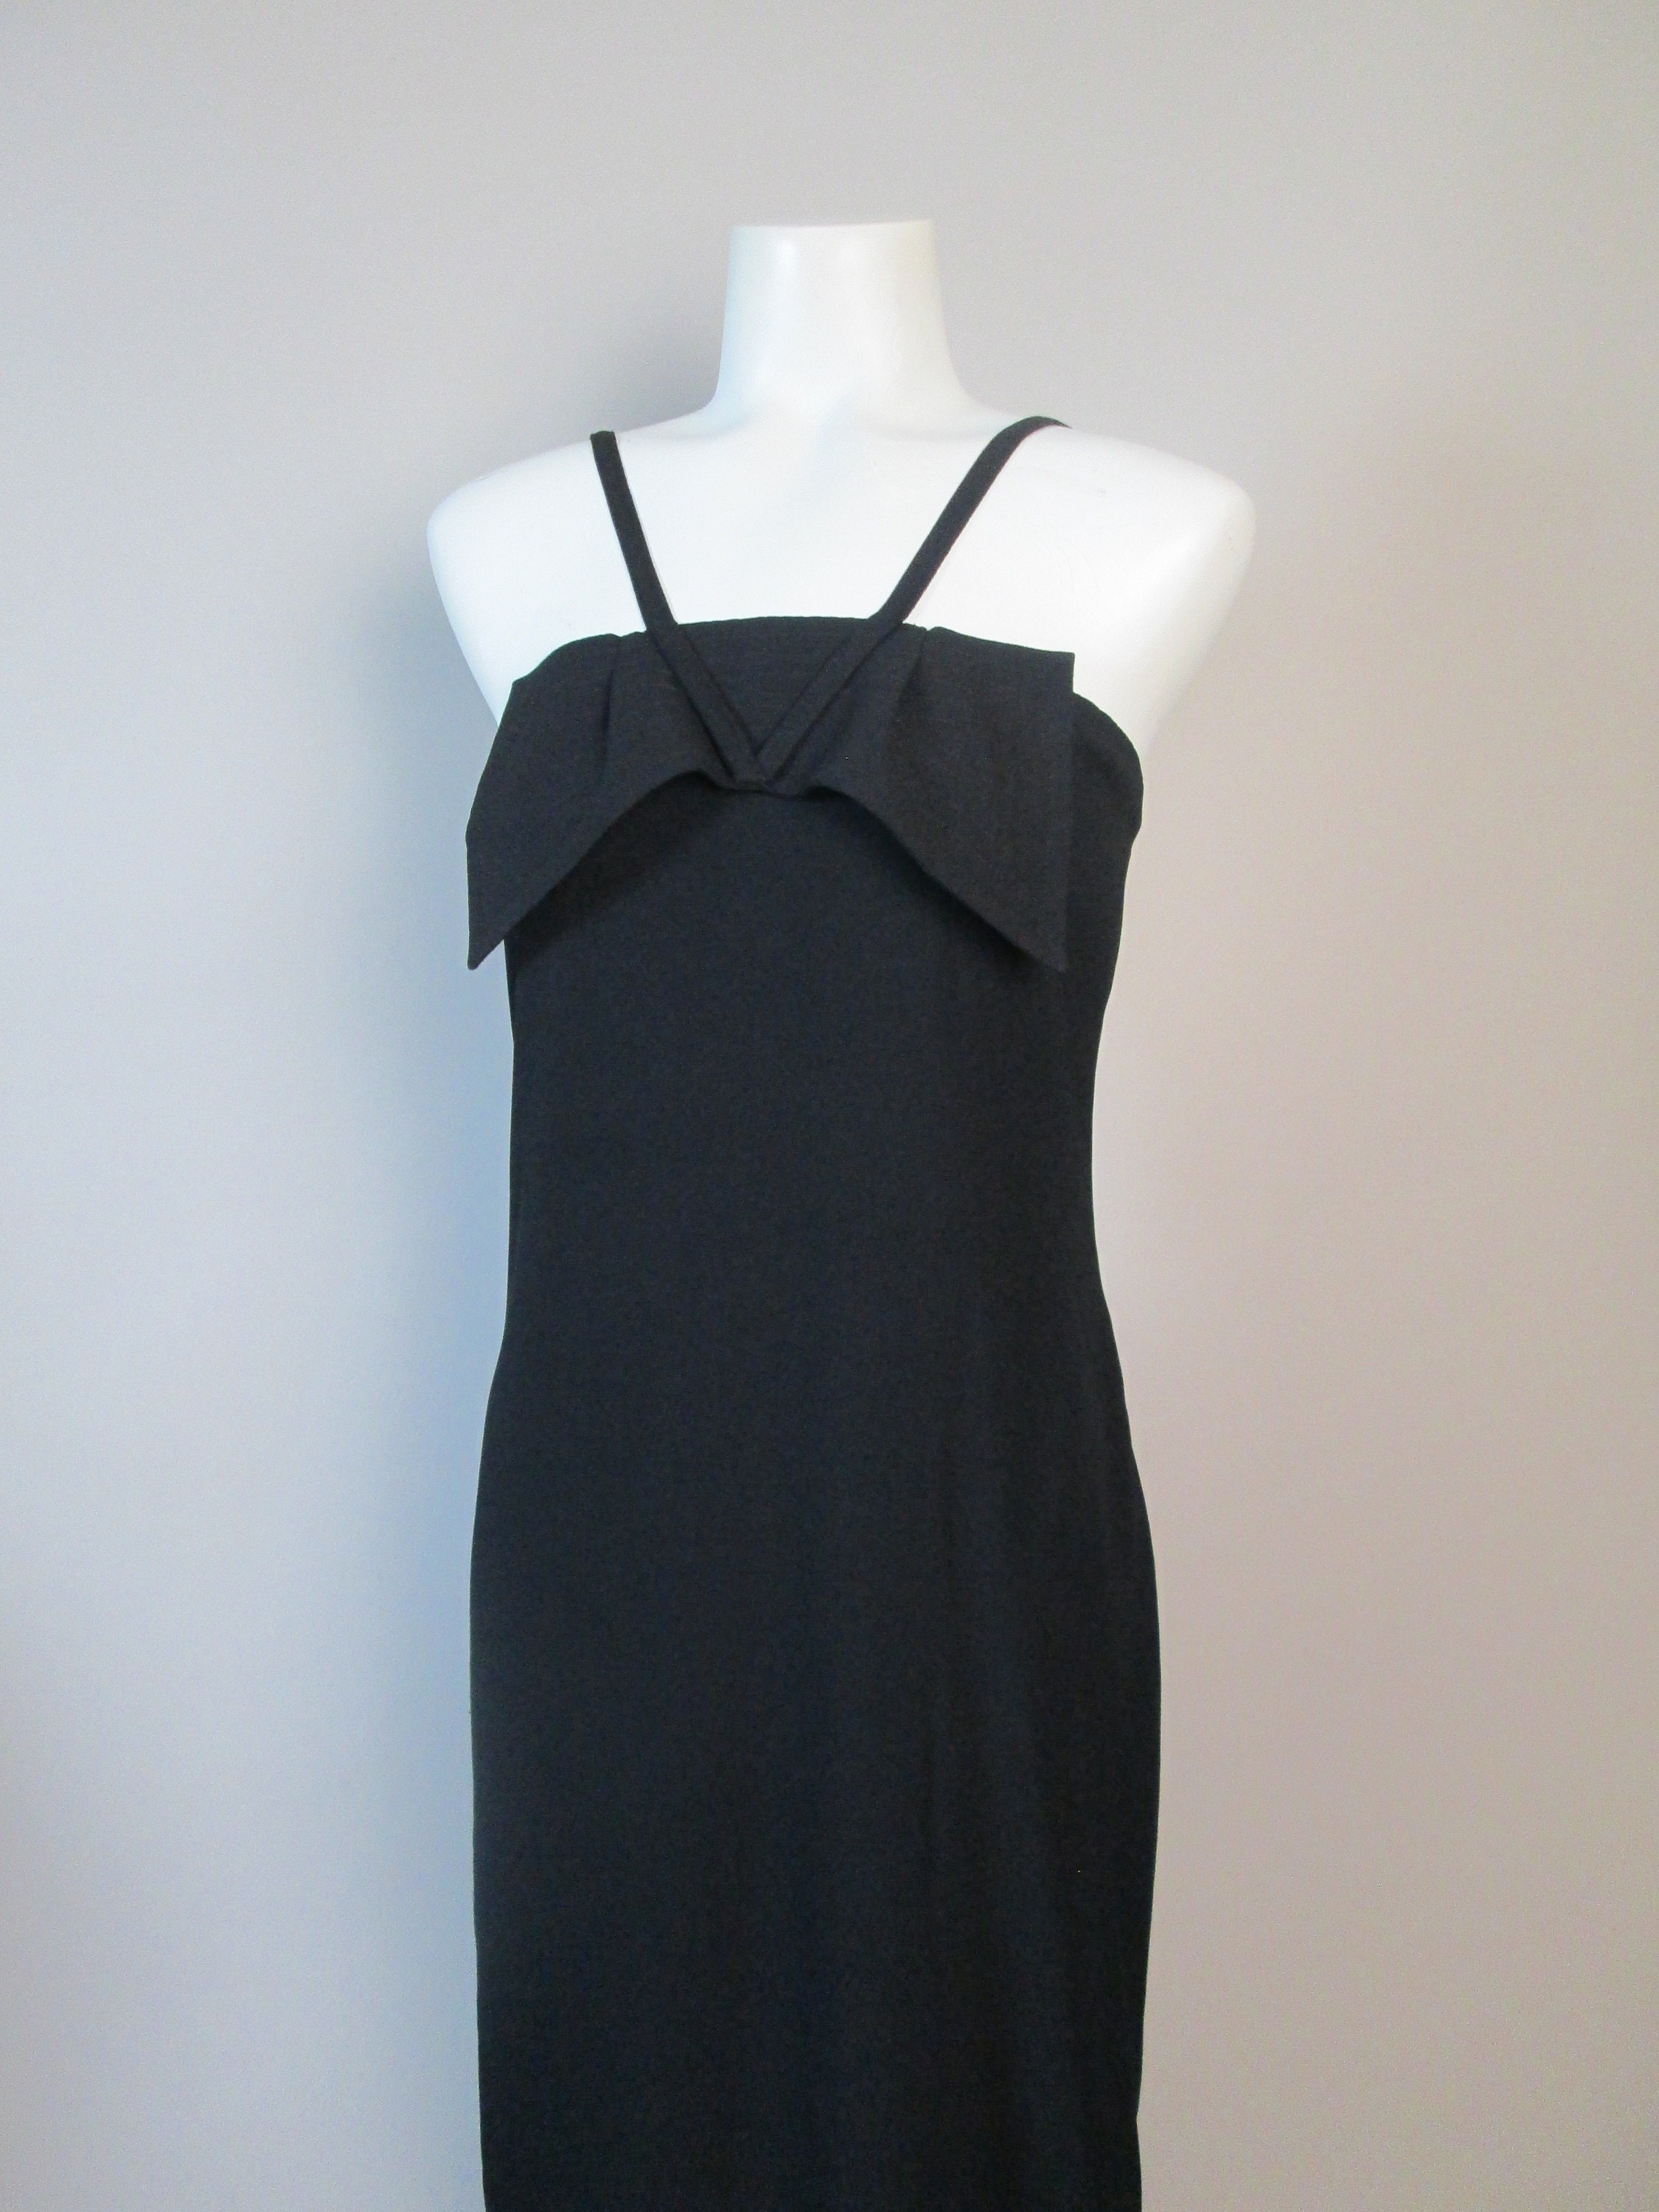 80s Dresses | Casual to Party Dresses Sonia Rykiel 1980S Flapper Dress. Minimalist Black Crepe, Large Bow Accent, Flared Straps. French Avant Garde Chic. Bust 35, Small-Medium $0.00 AT vintagedancer.com